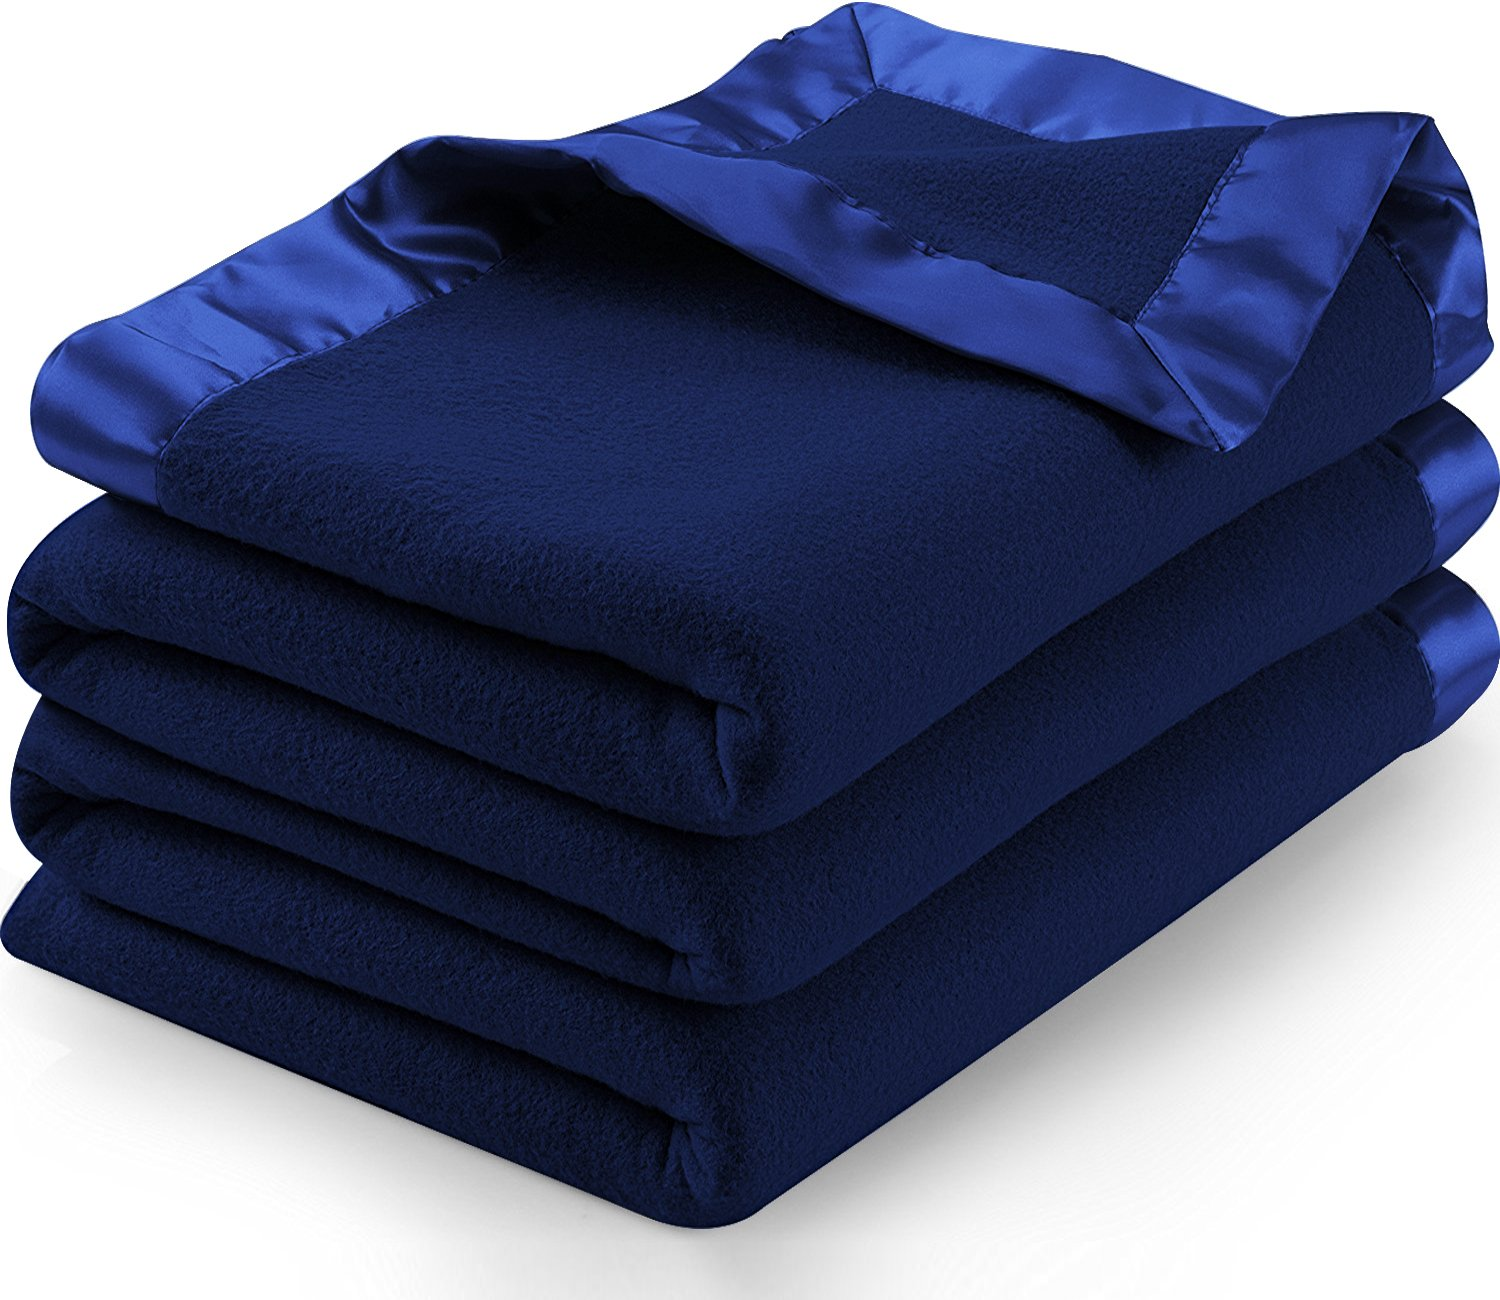 Utopia Bedding Sateen Polar Fleece Blanket with Sateen Ribbon Edges (Navy, Twin) – Extra Soft Brush Fabric – Super Warm, Lightweight Bed/Couch Blanket – Easy Care